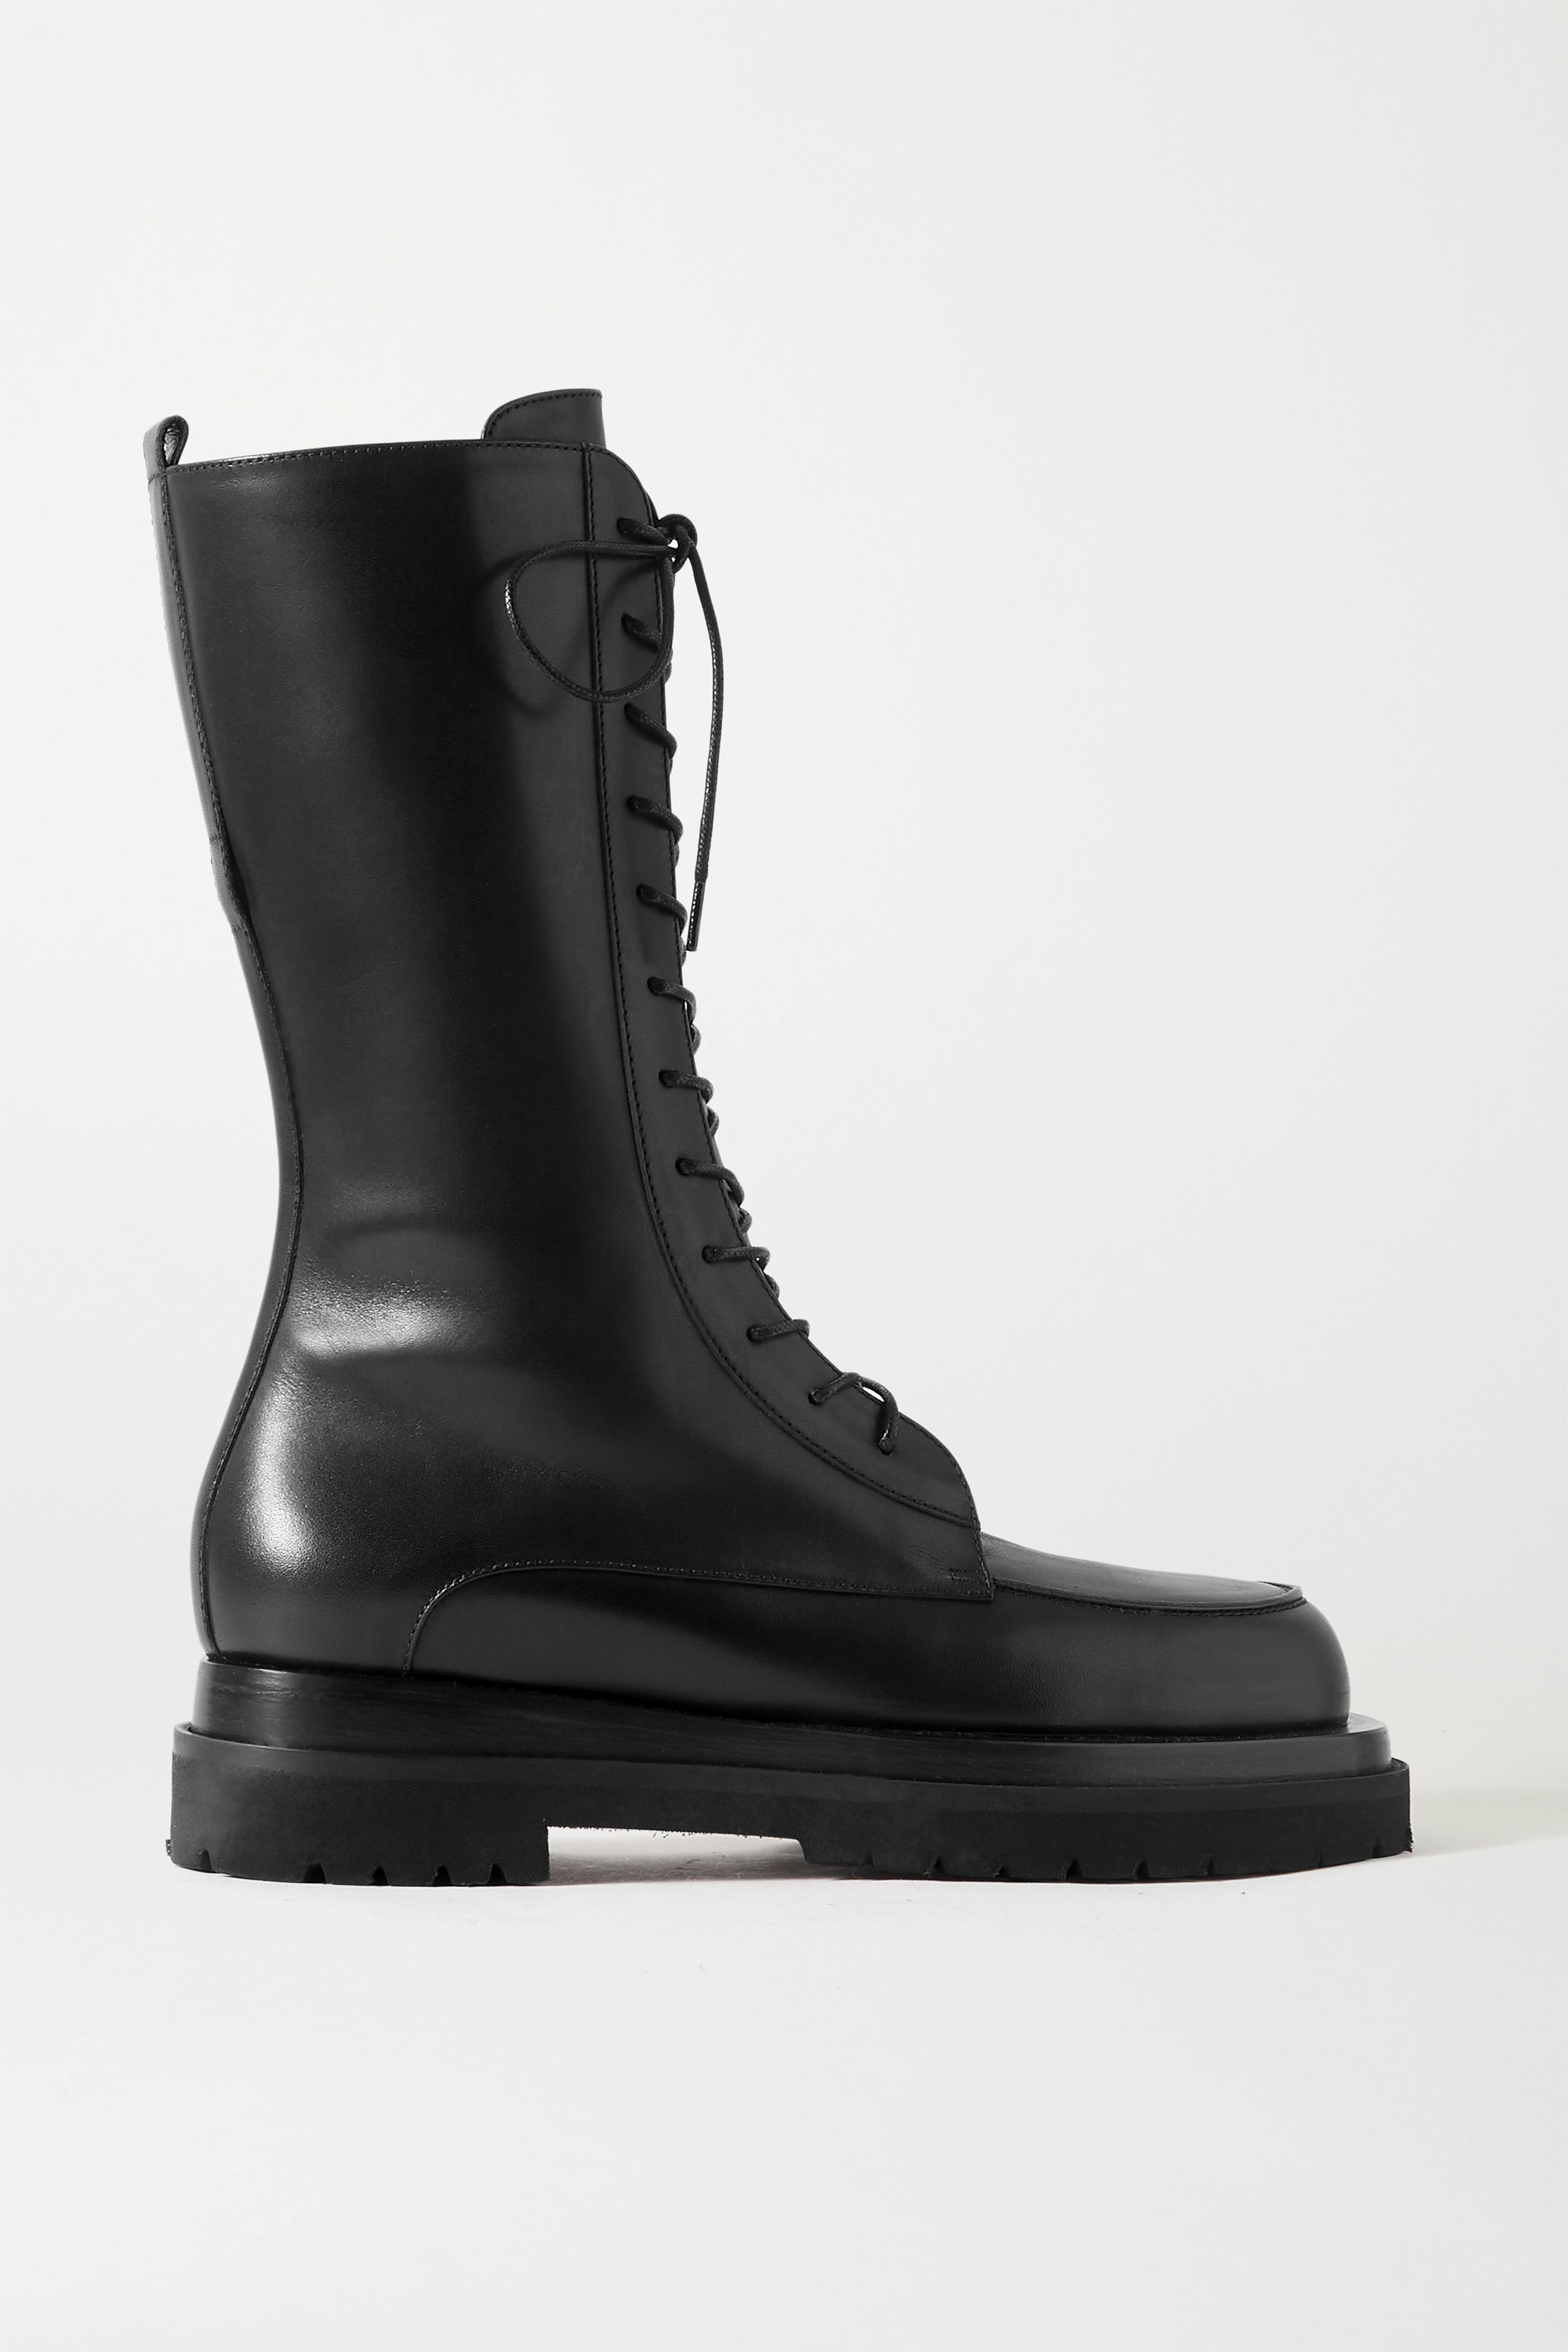 Magda Butrym Leather boots